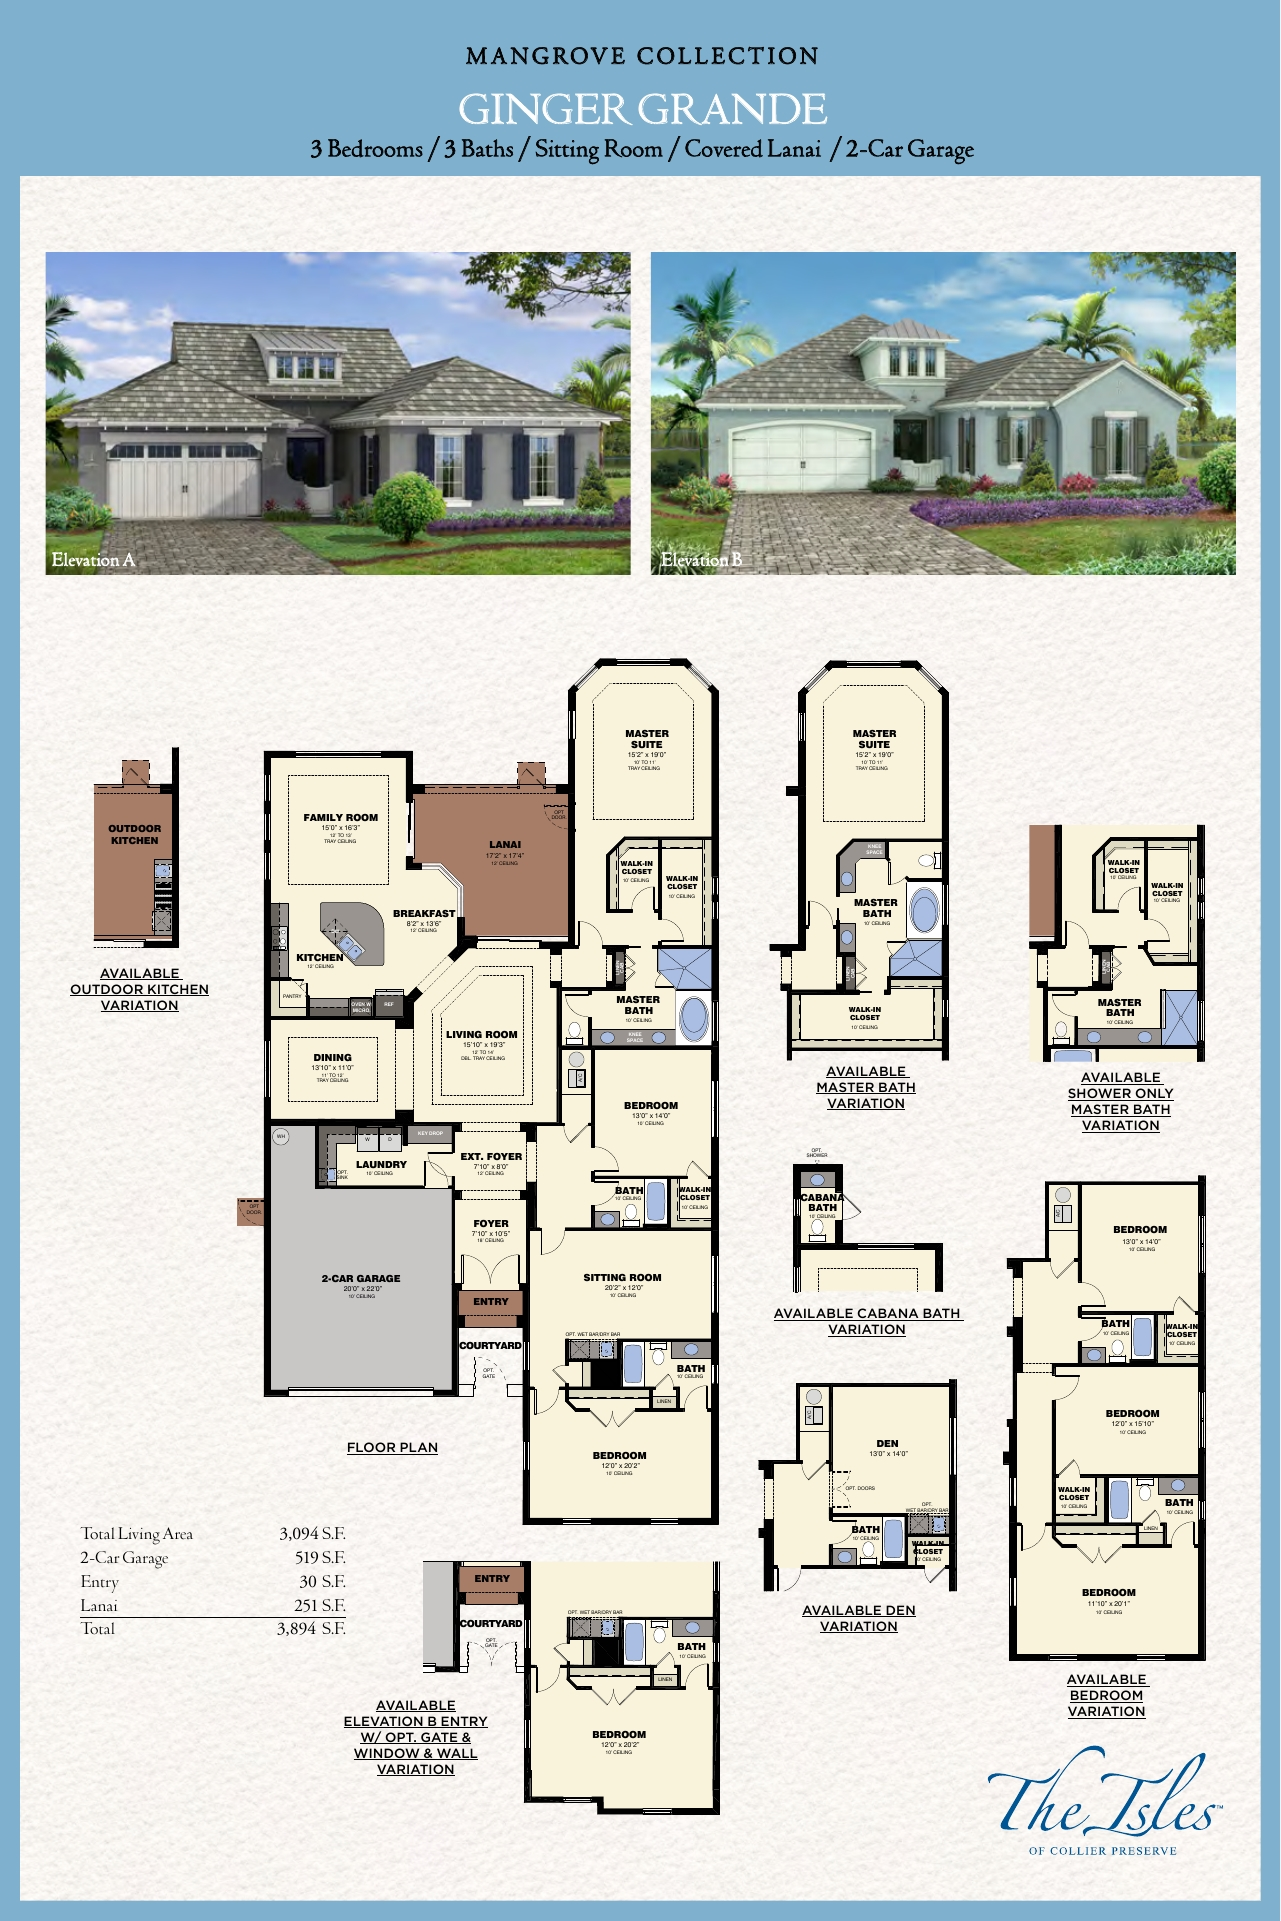 The Isles Of Collier Naples Florida Ginger Grande Floor